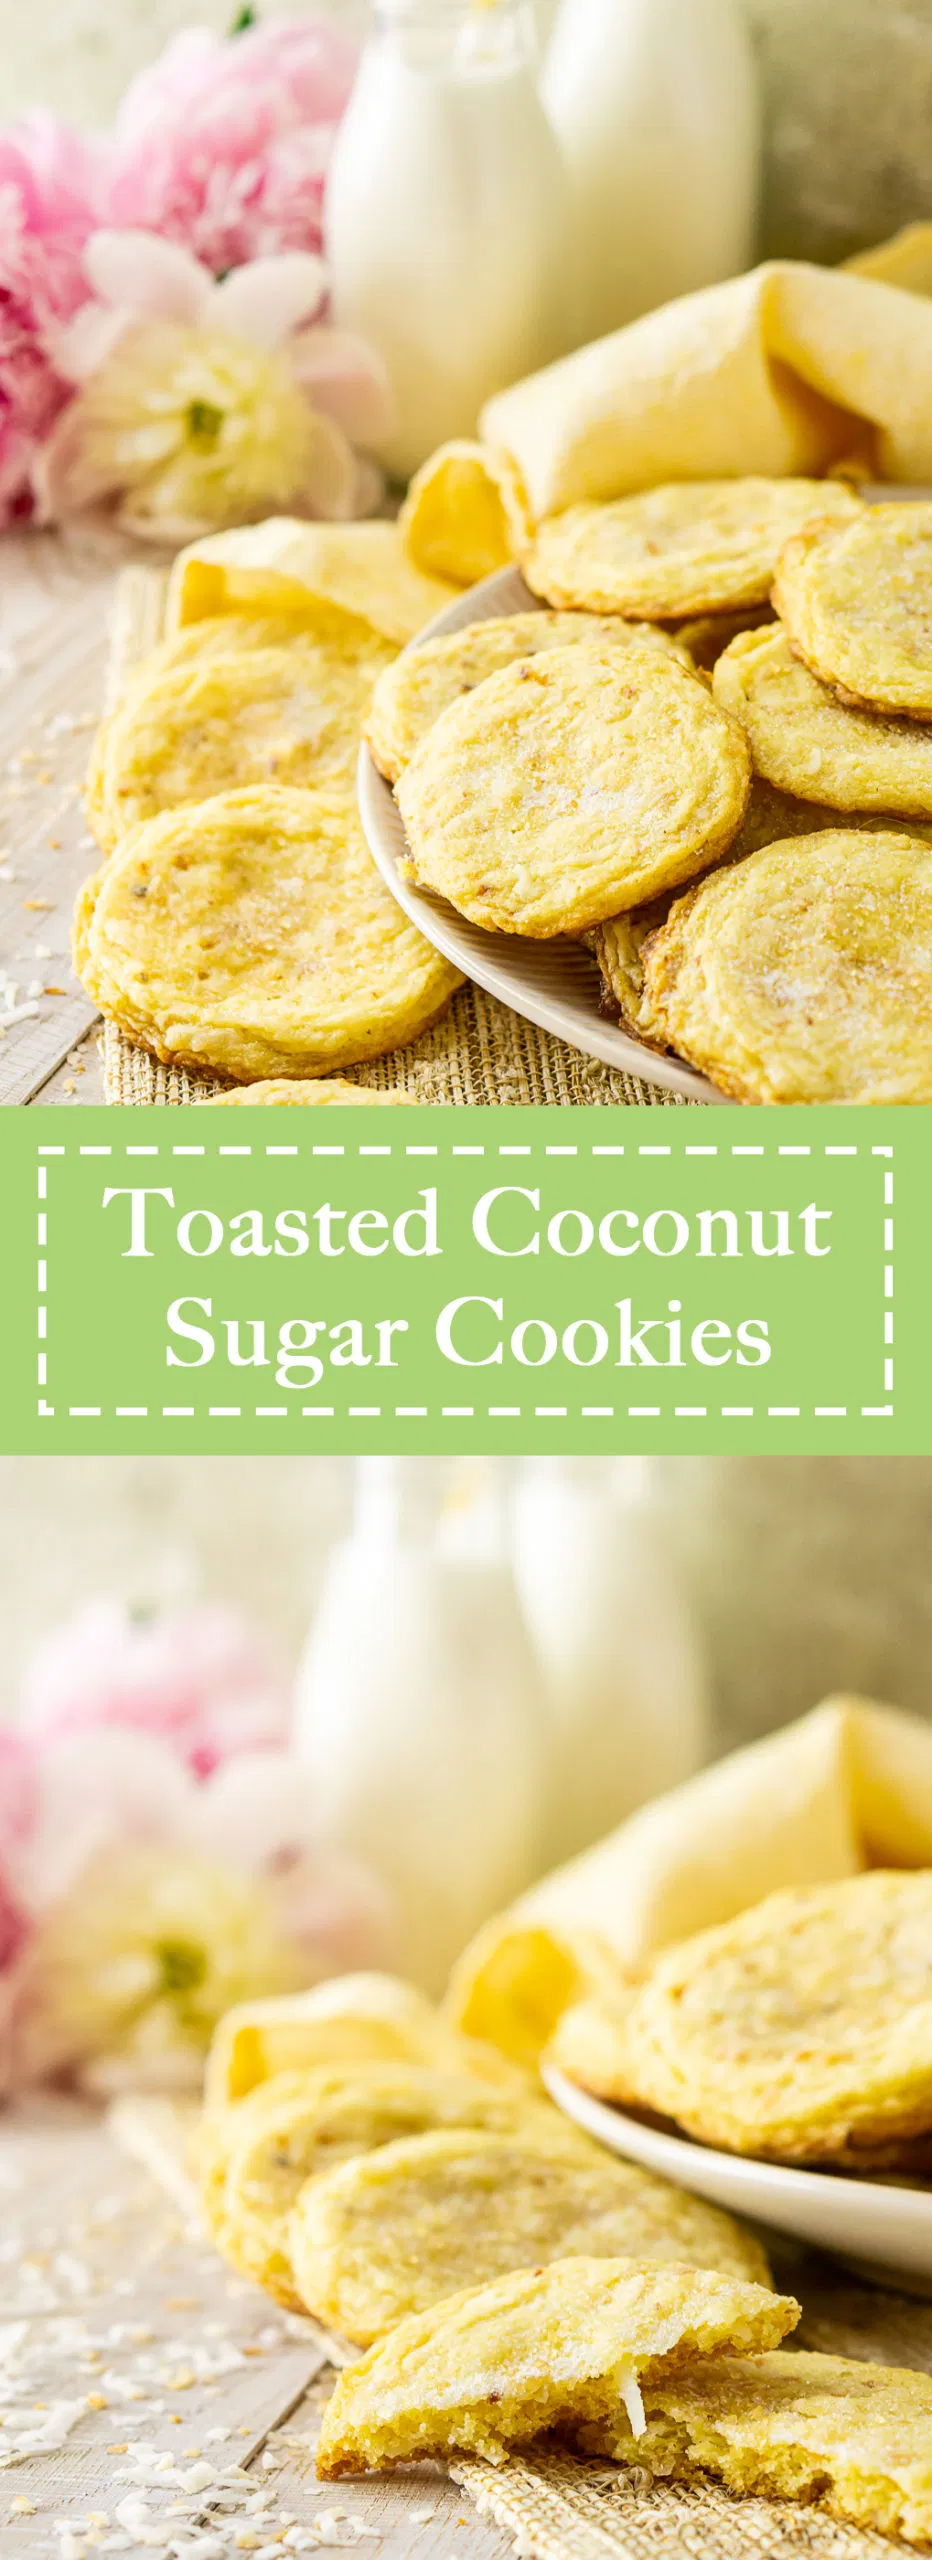 Searching for the perfect summer cookies? You'll love these toasted coconut sugar cookies! These super soft and chewy sugar cookies are full of tropical flavor and perfect for summer entertaining. Everyone always loves this easy sugar cookie recipe. #coconutsugarcookies #chewysugarcookies #coconutcookies #summercookies #bestsugarcookierecipe #bakerystylesugarcookies